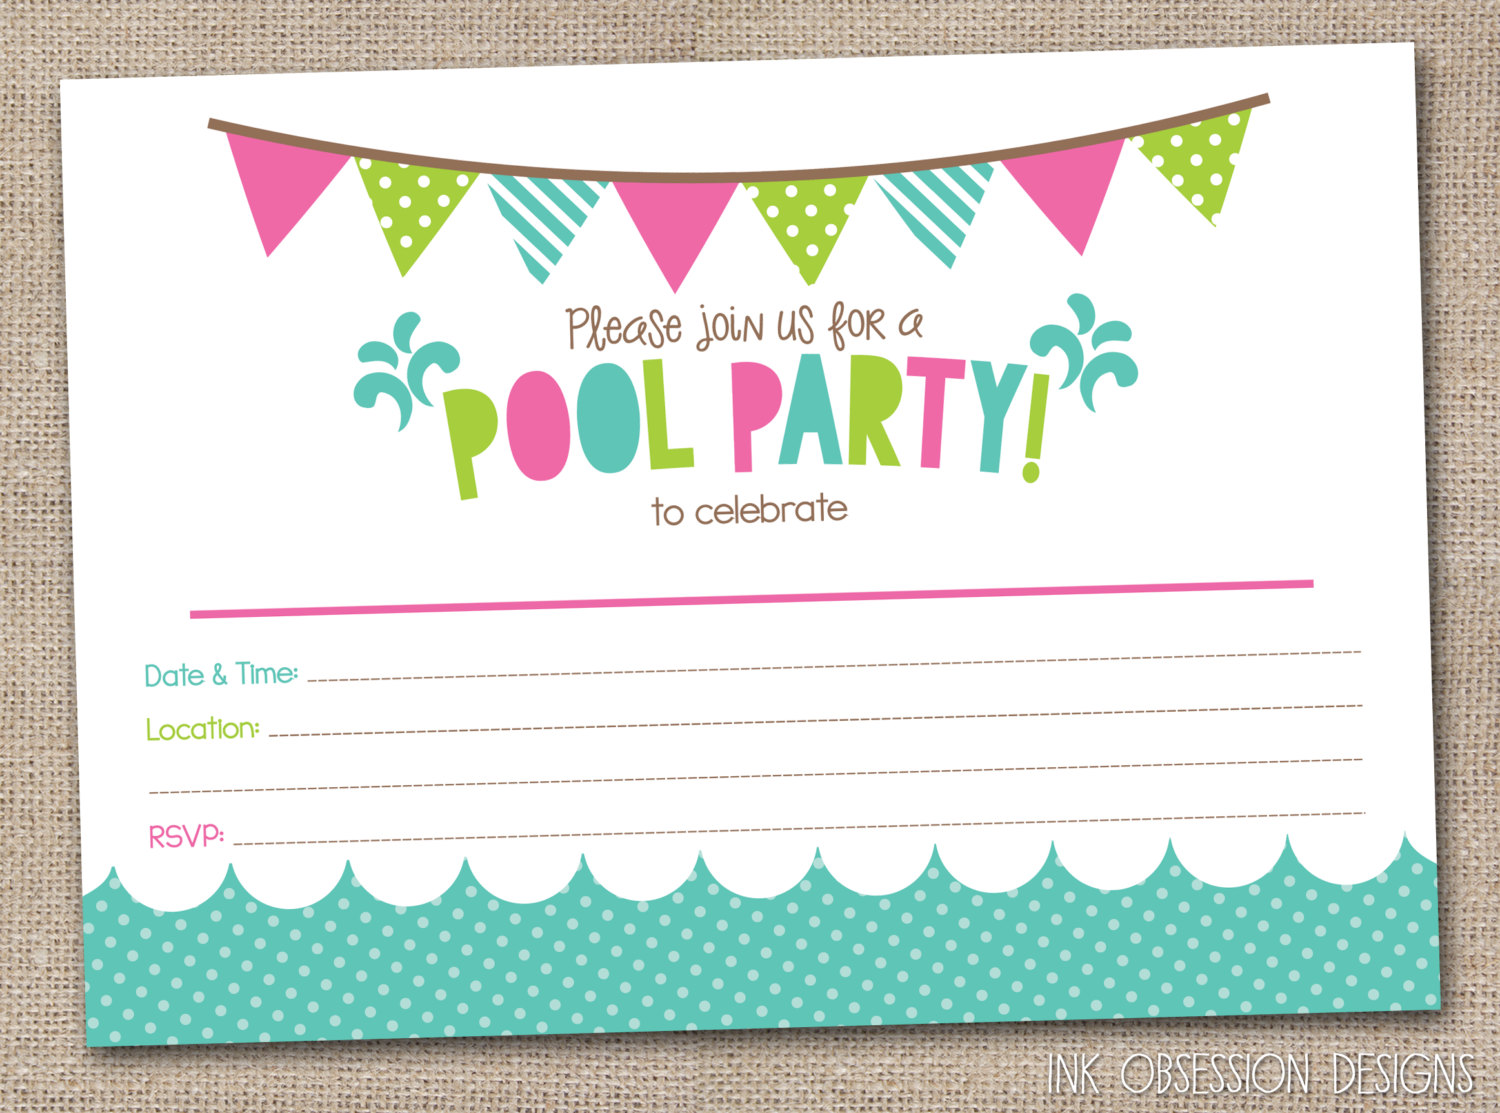 free printable birthday party invitations templates ; Pool-Party-Invite-and-get-inspiration-to-make-amazing-invitations-design-ideas